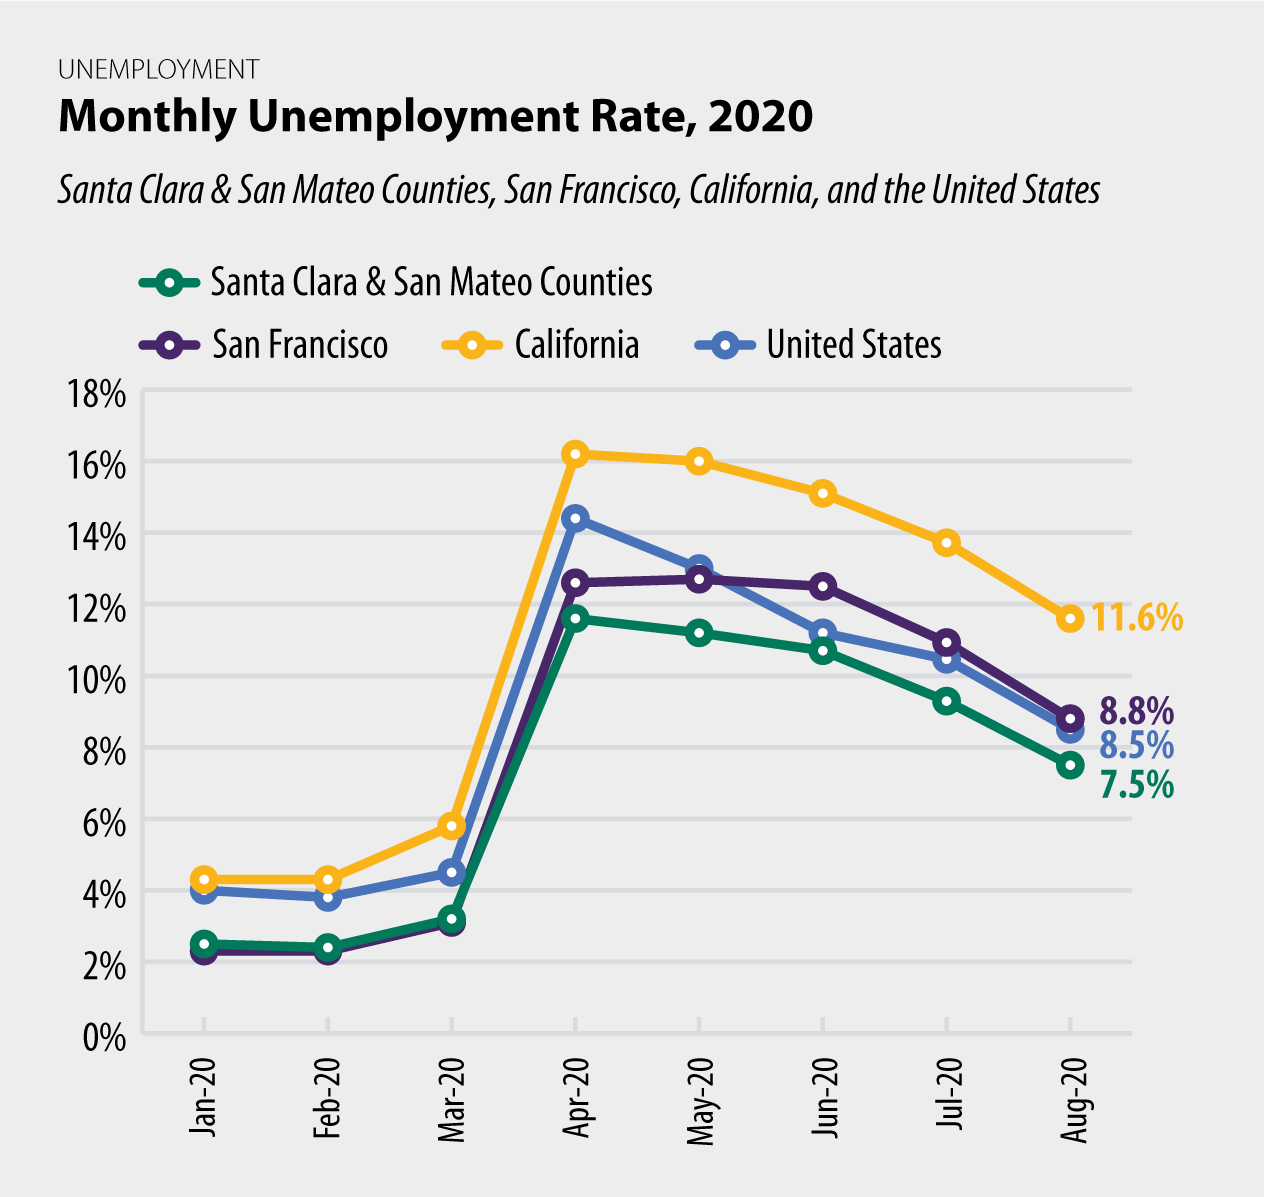 Monthly Unemployment Rate, 2020 chart